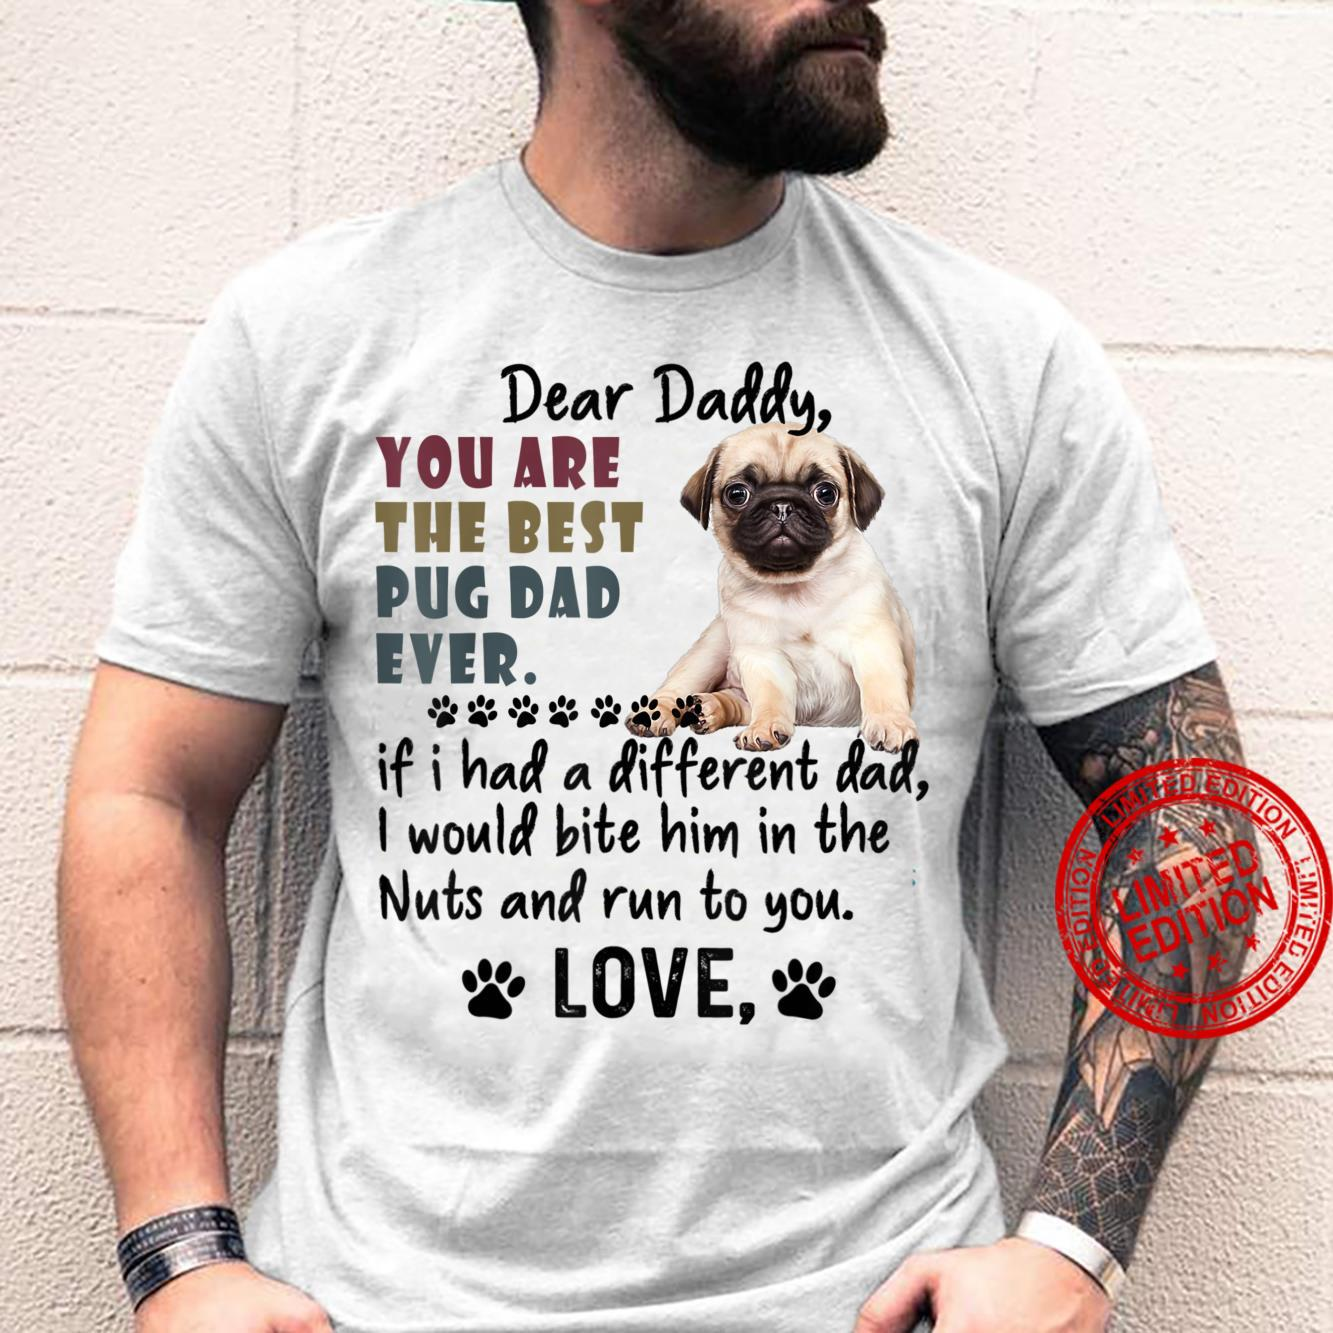 You Are The Best Pug Dad Ever Father's Day Shirt